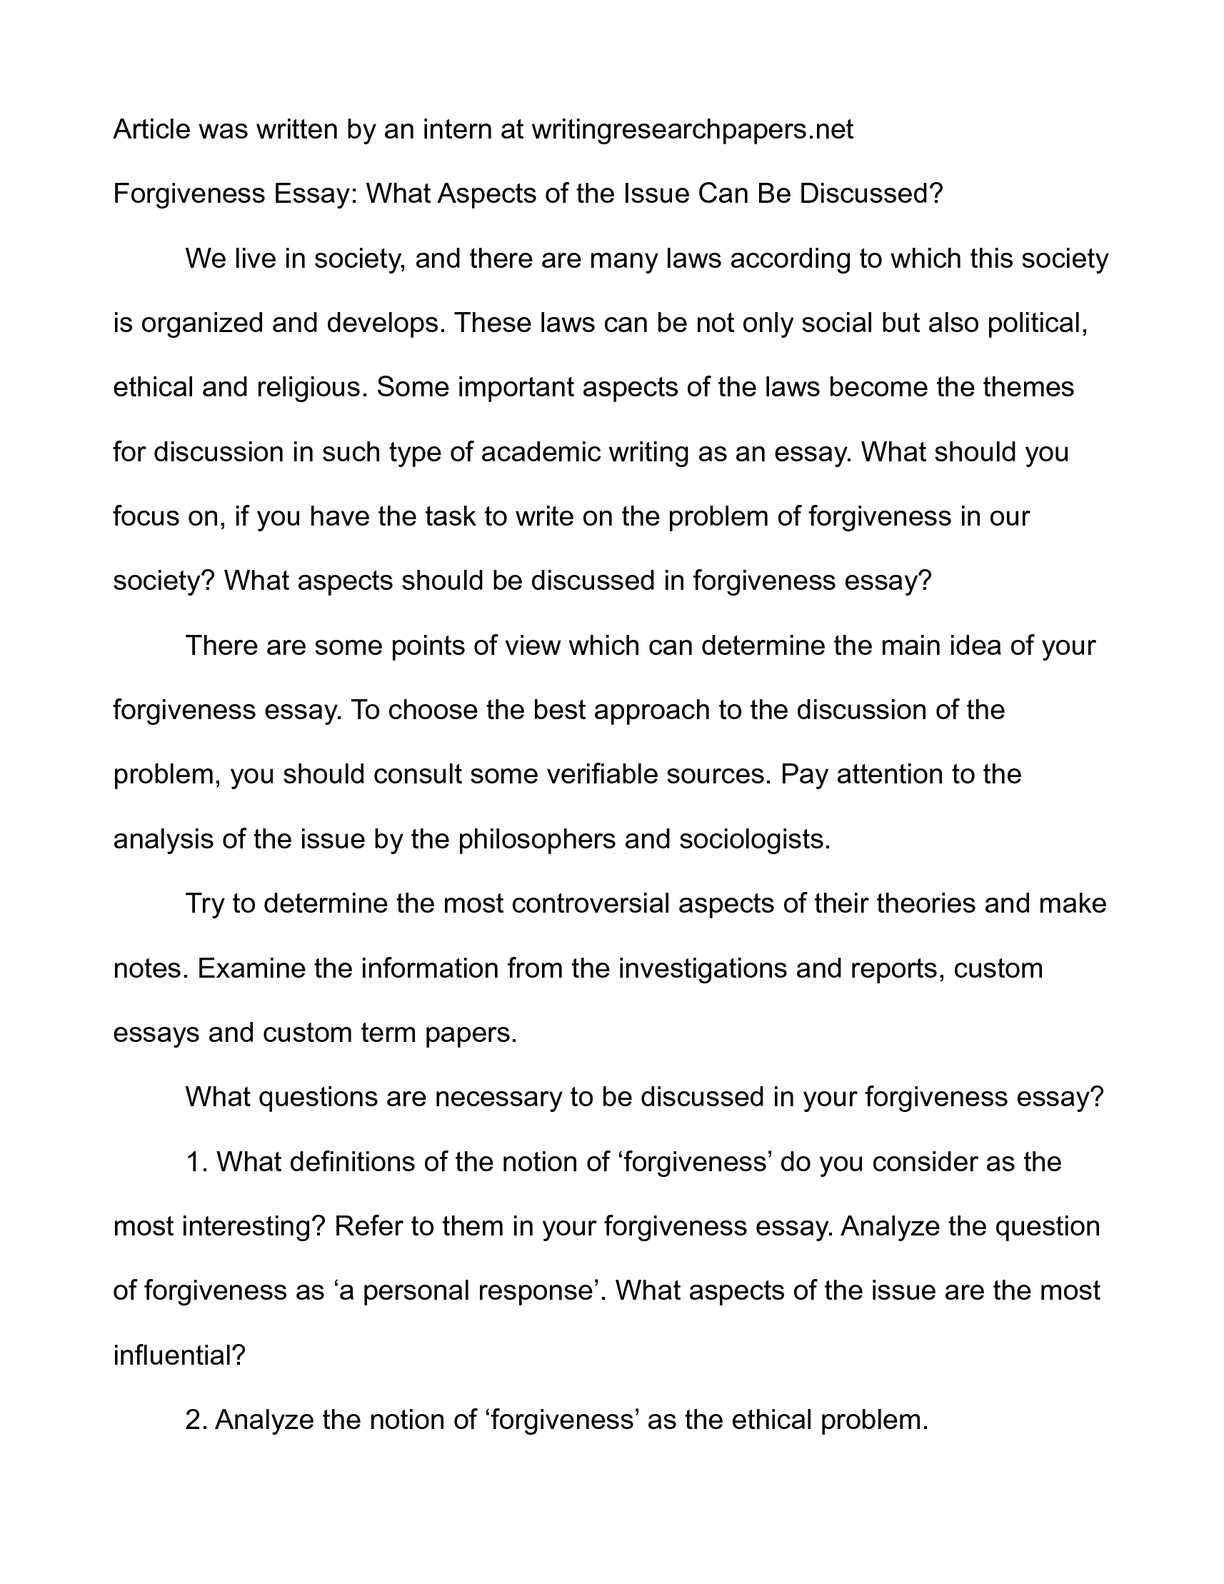 calam atilde copy o forgiveness essay what aspects of the issue can be calamatildecopyo forgiveness essay what aspects of the issue can be discussed